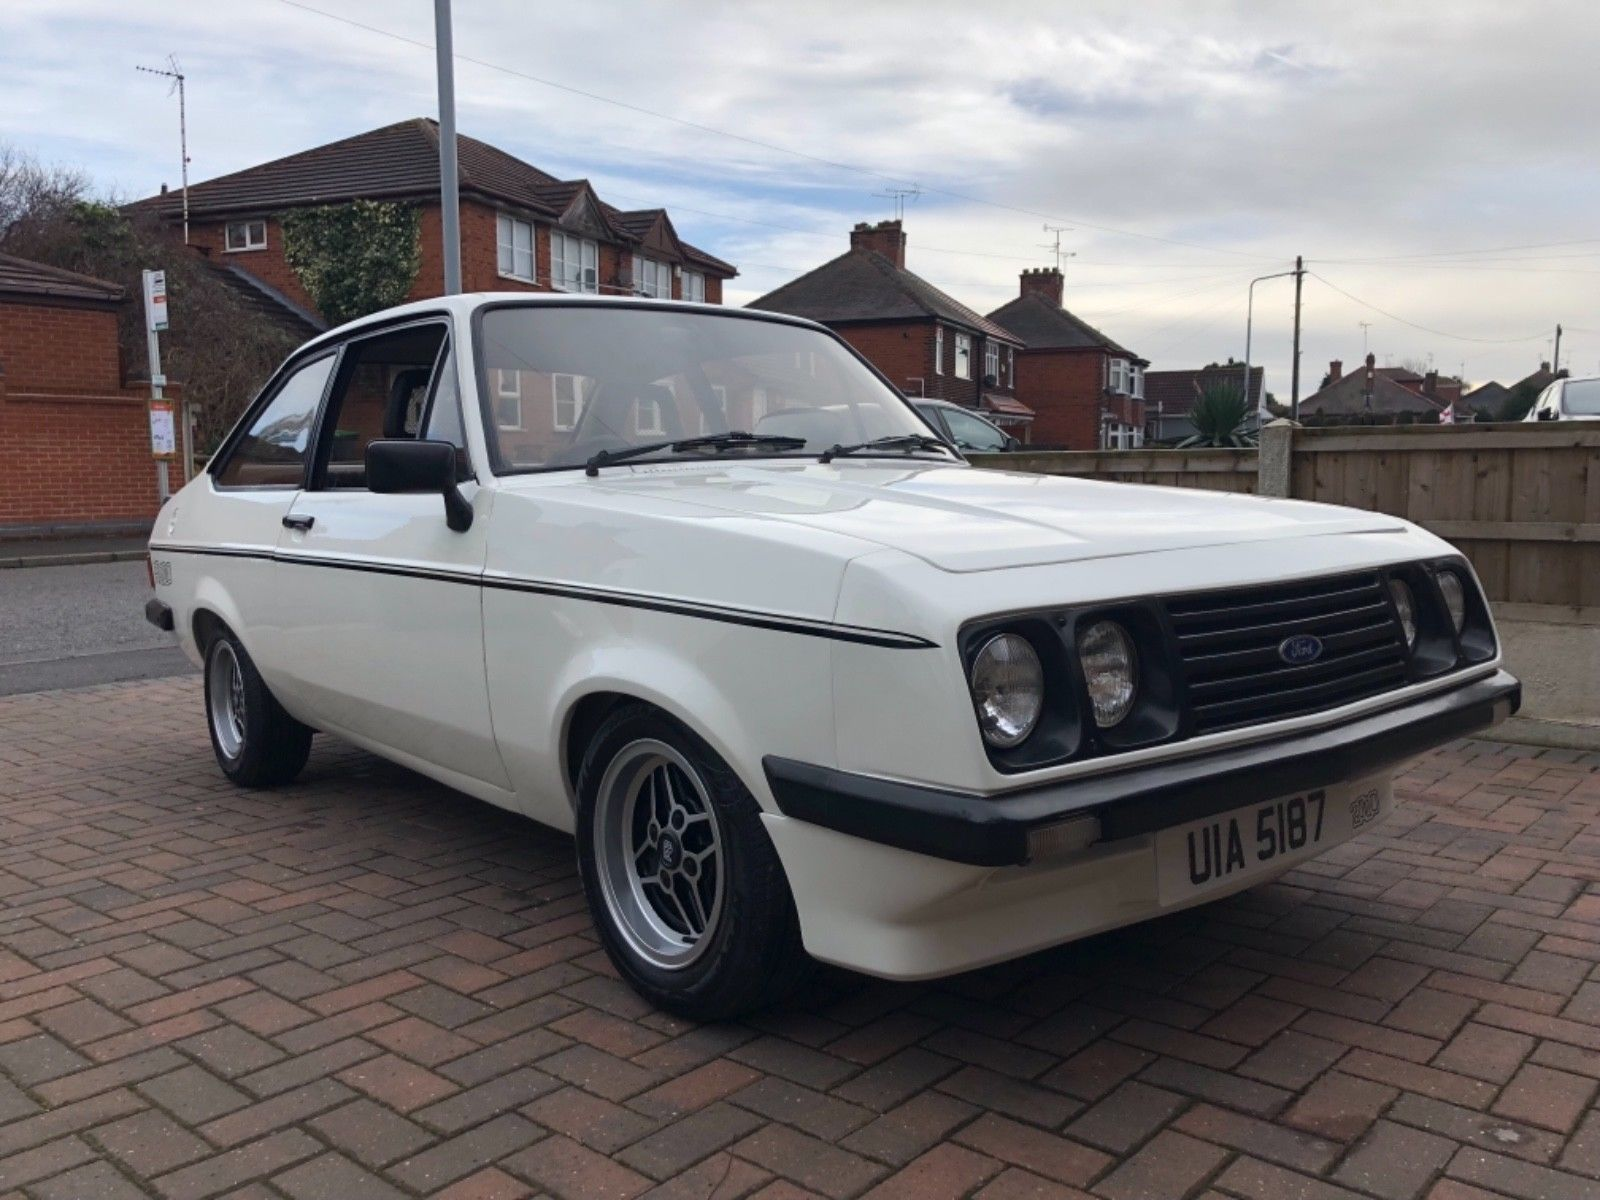 eBay: Ford Escort RS2000 custom may px? Escort Rs turbo, cosworth ...